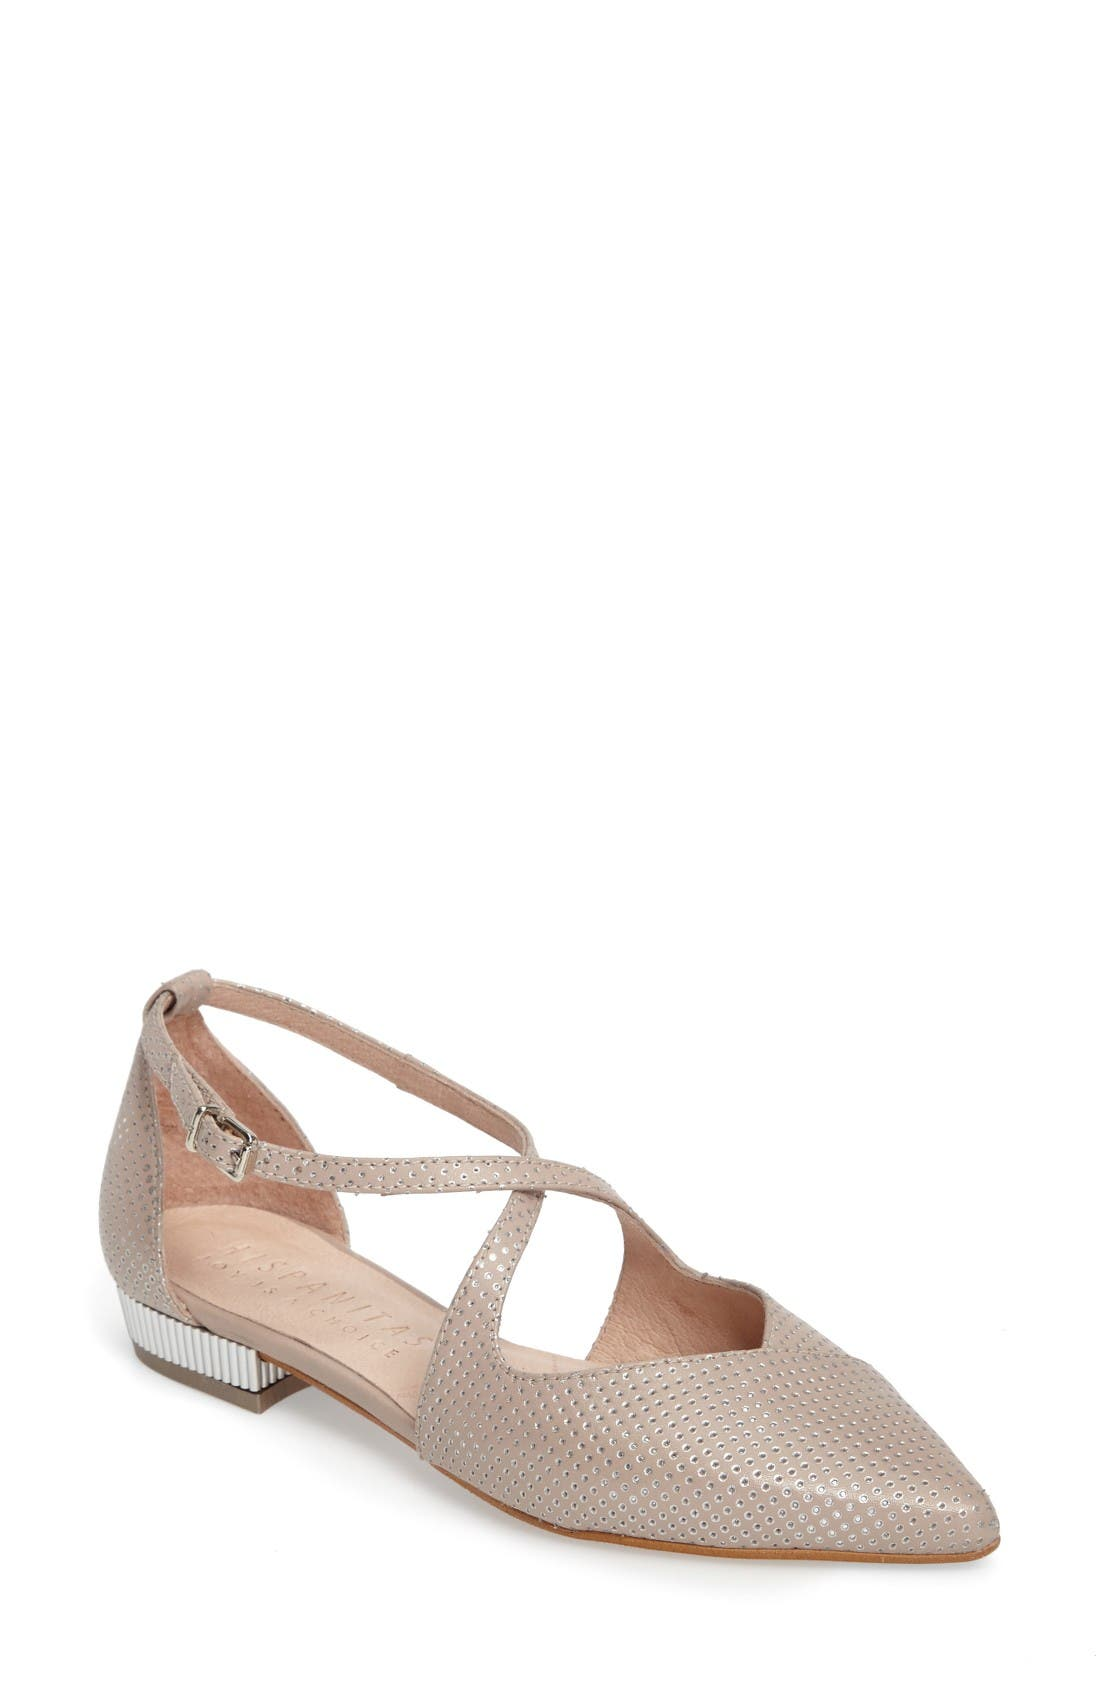 April Perforated Pointy Toe Flat,                             Main thumbnail 1, color,                             Nougat Leather